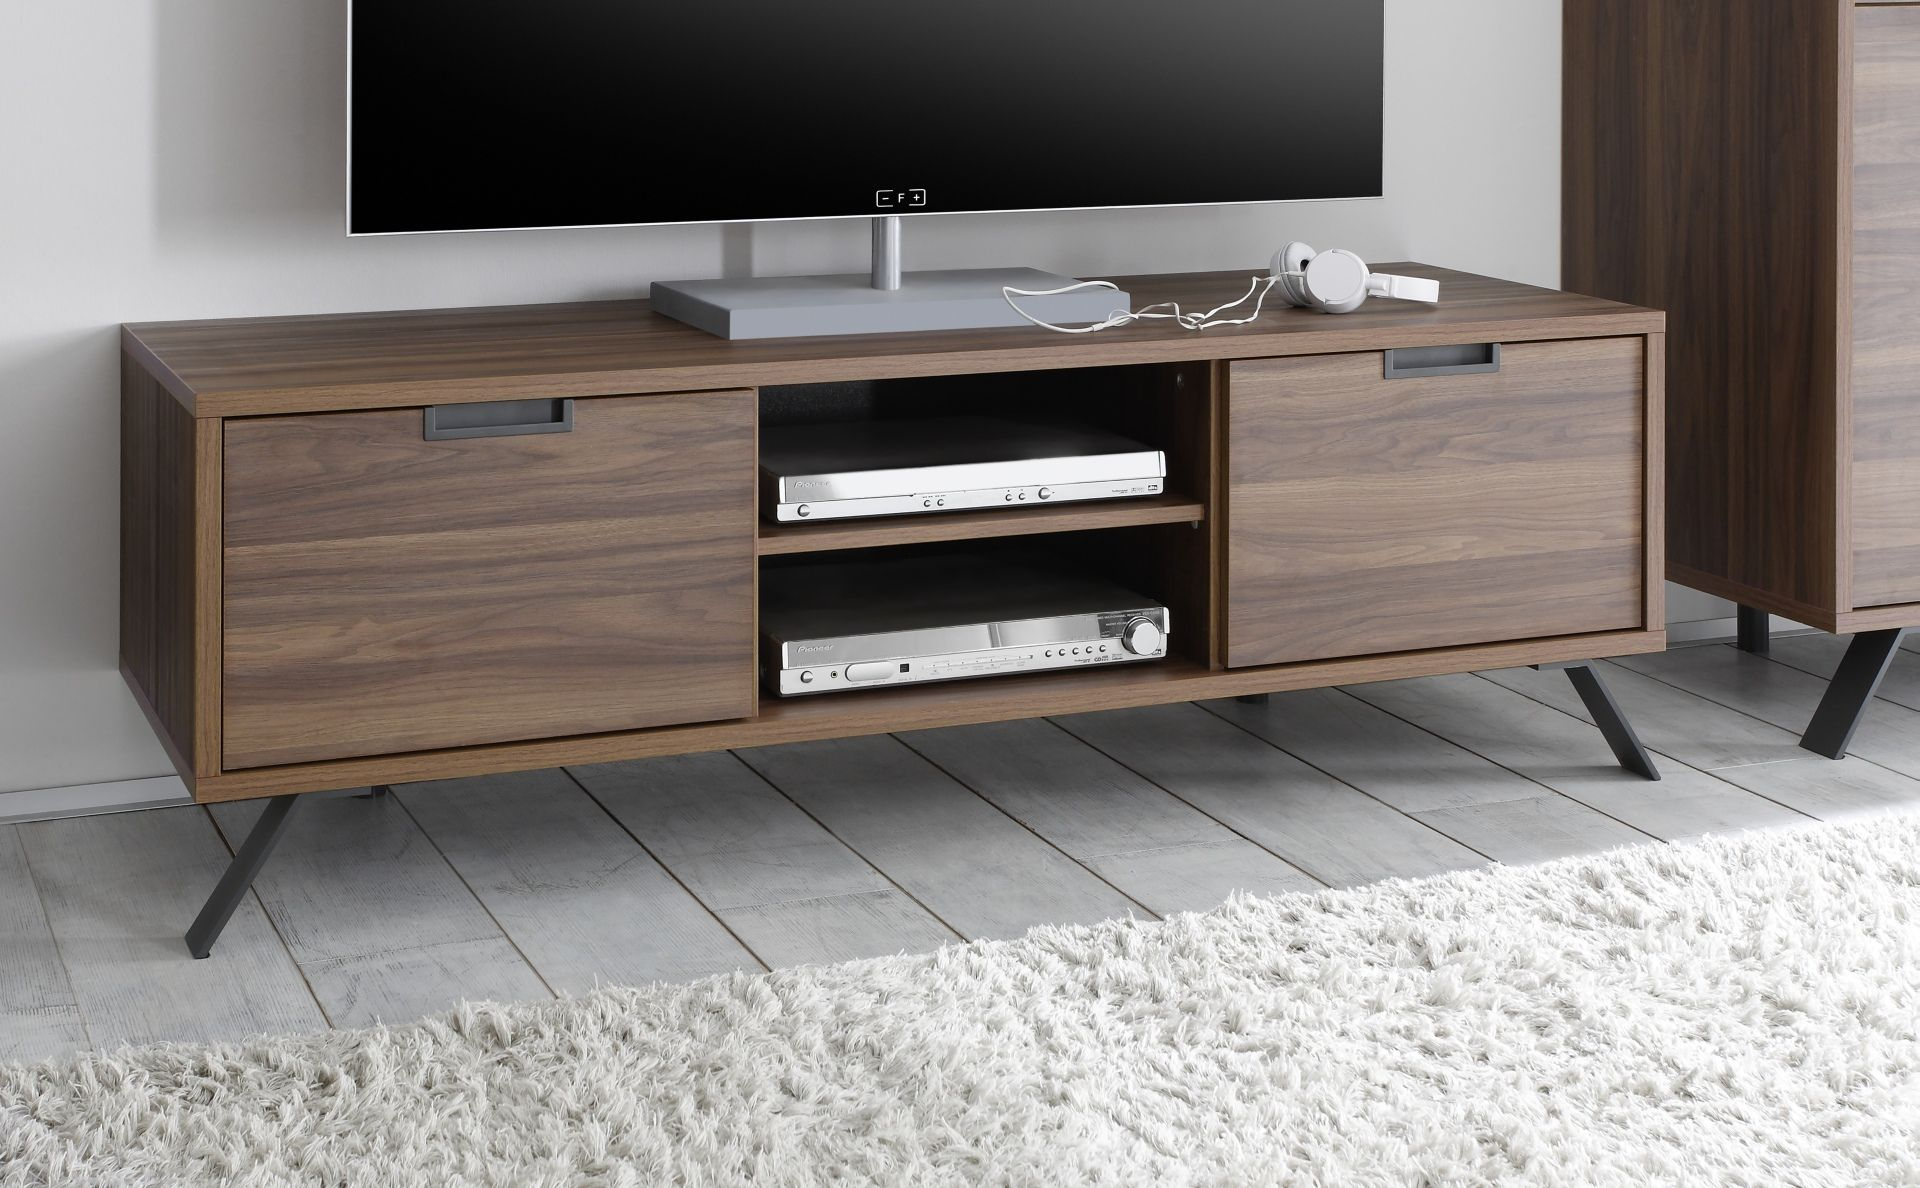 Walnut Color Wooden Italian TV Stand